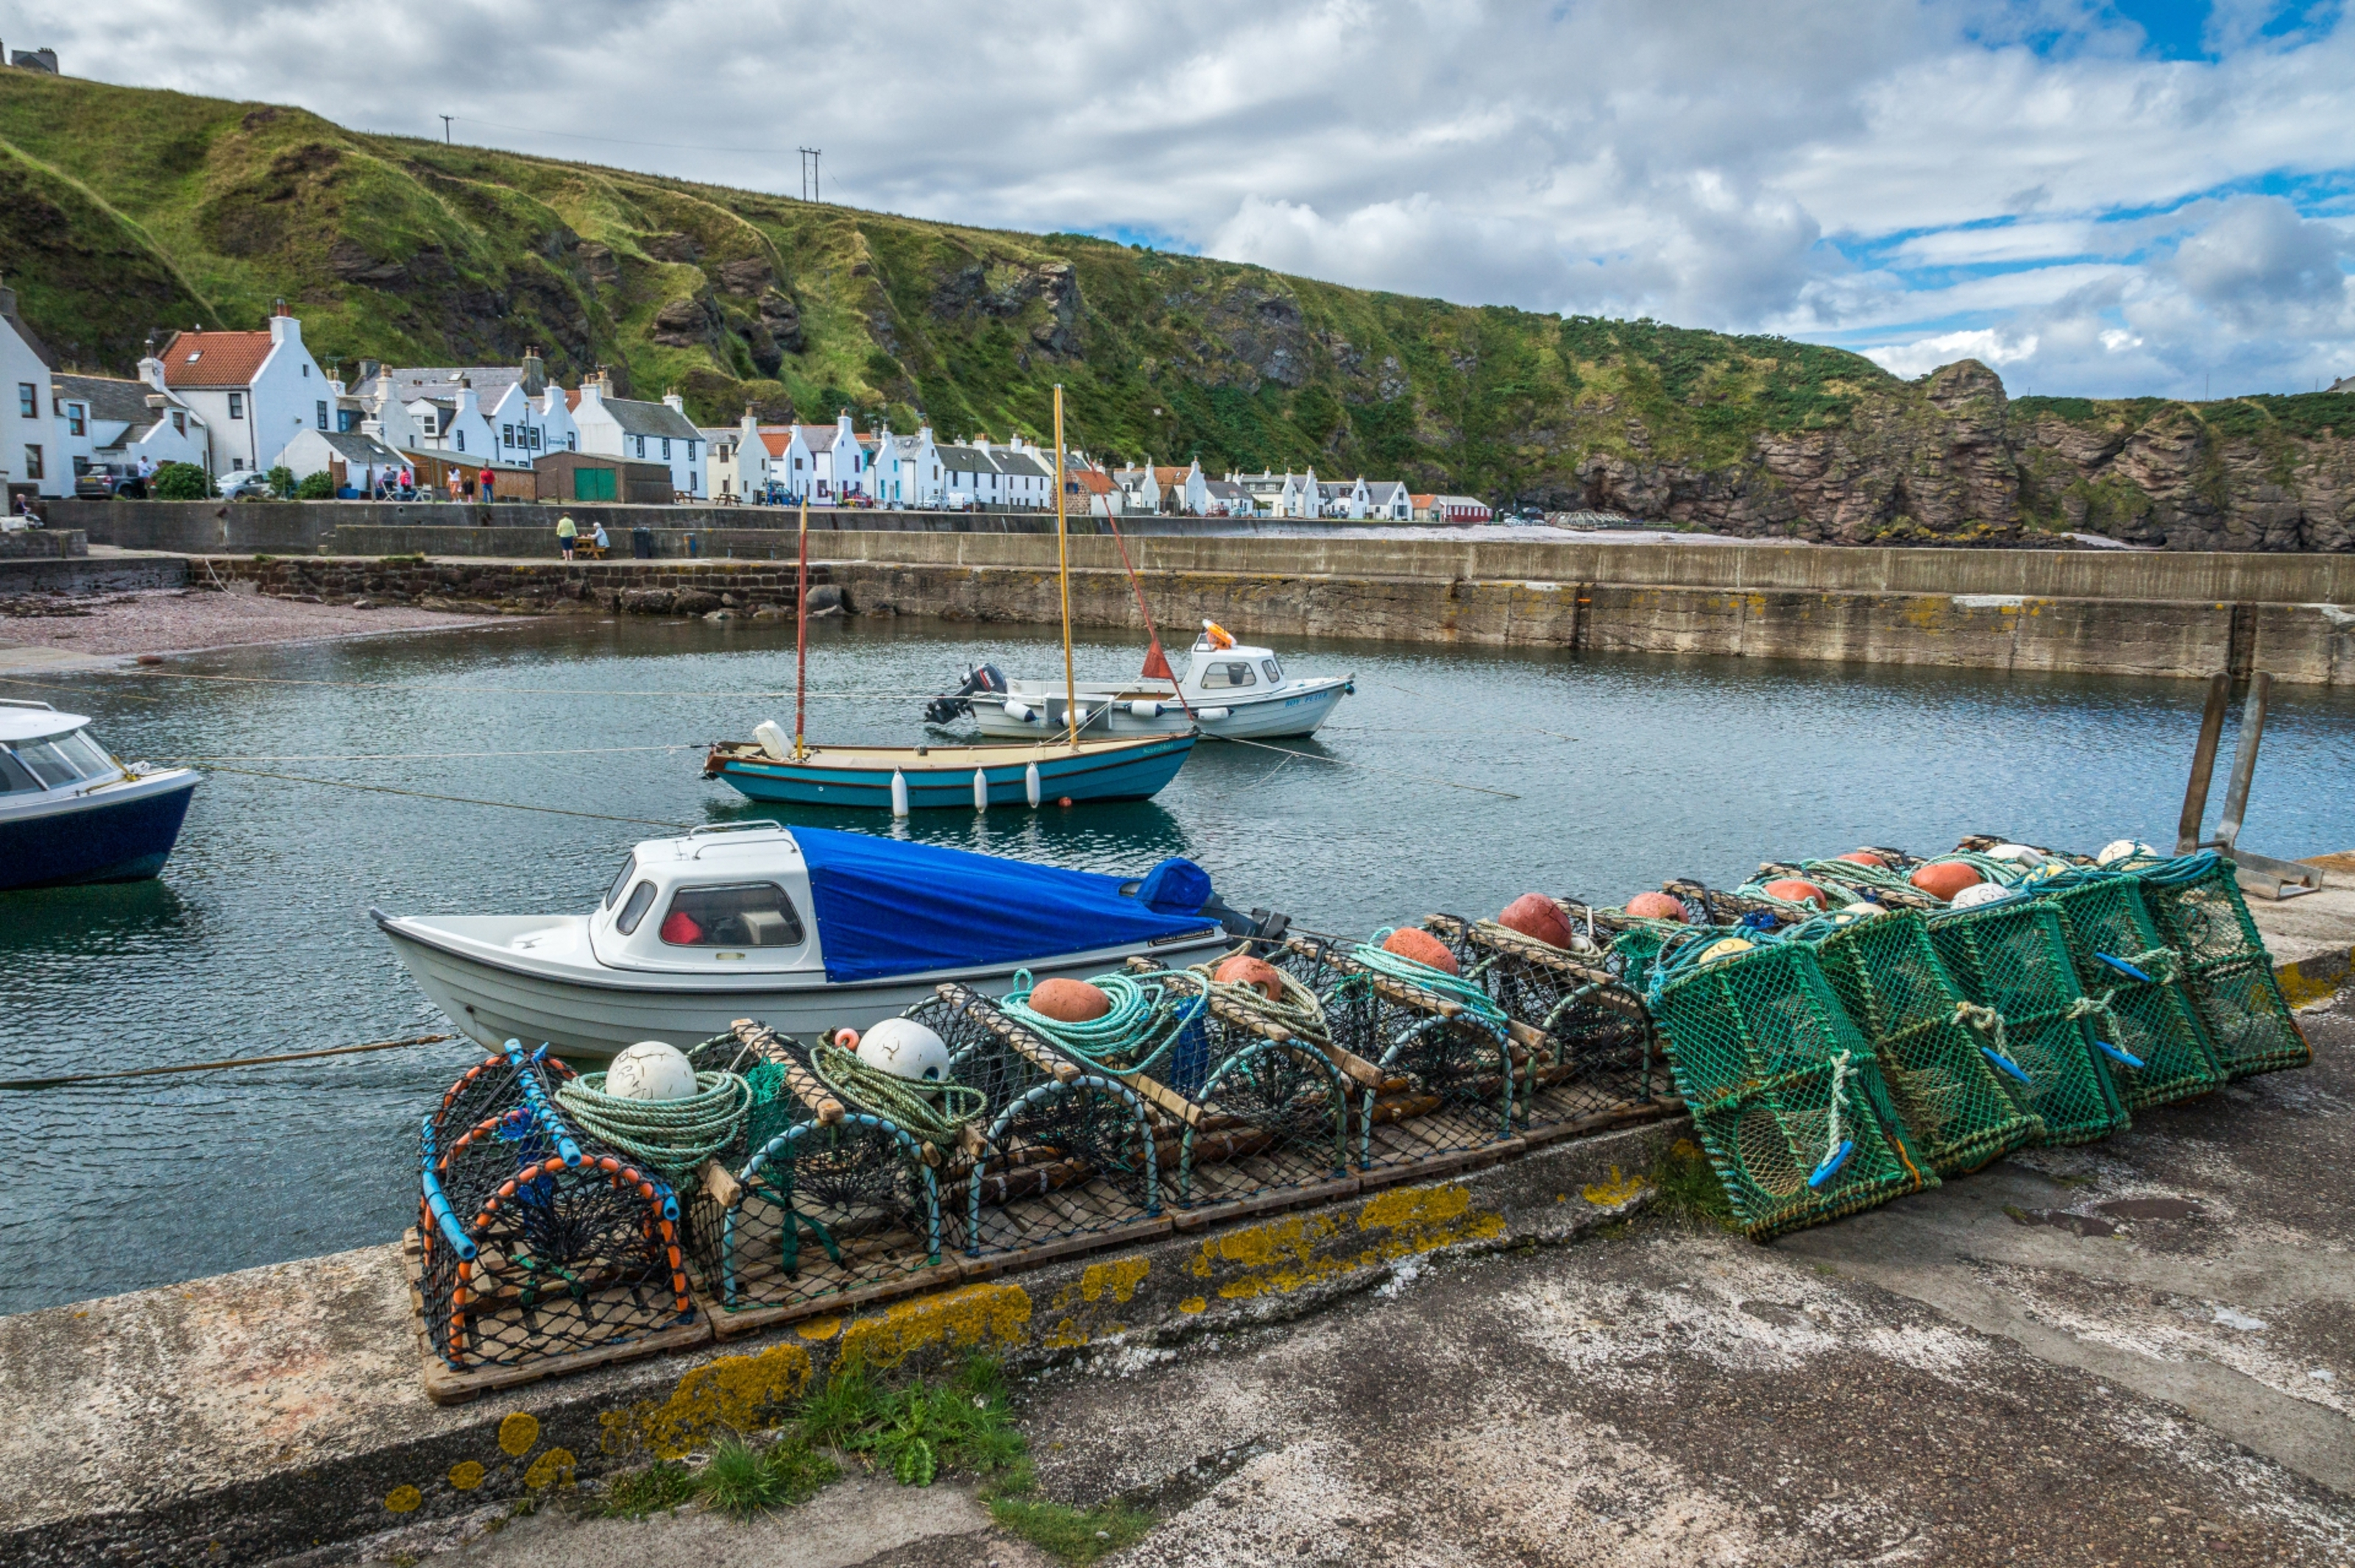 The picturesque fishing village of Pennan in Aberdeenshire features in a remake of Whisky Galore.